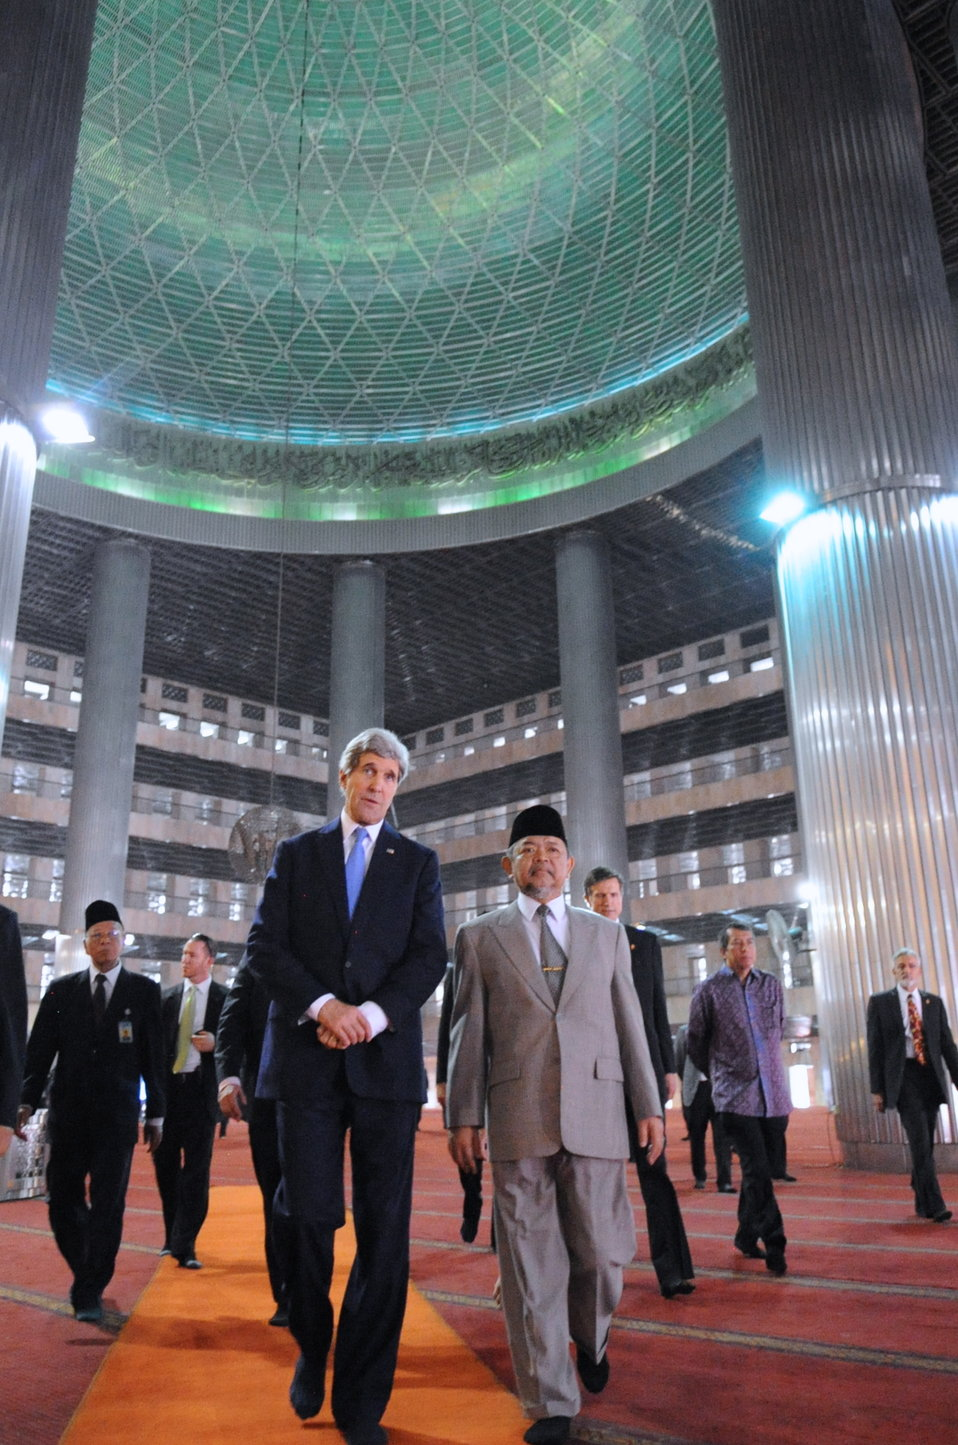 Secretary Kerry Leaves Grand Domed Prayer Hall During Mosque Tour in Jakarta